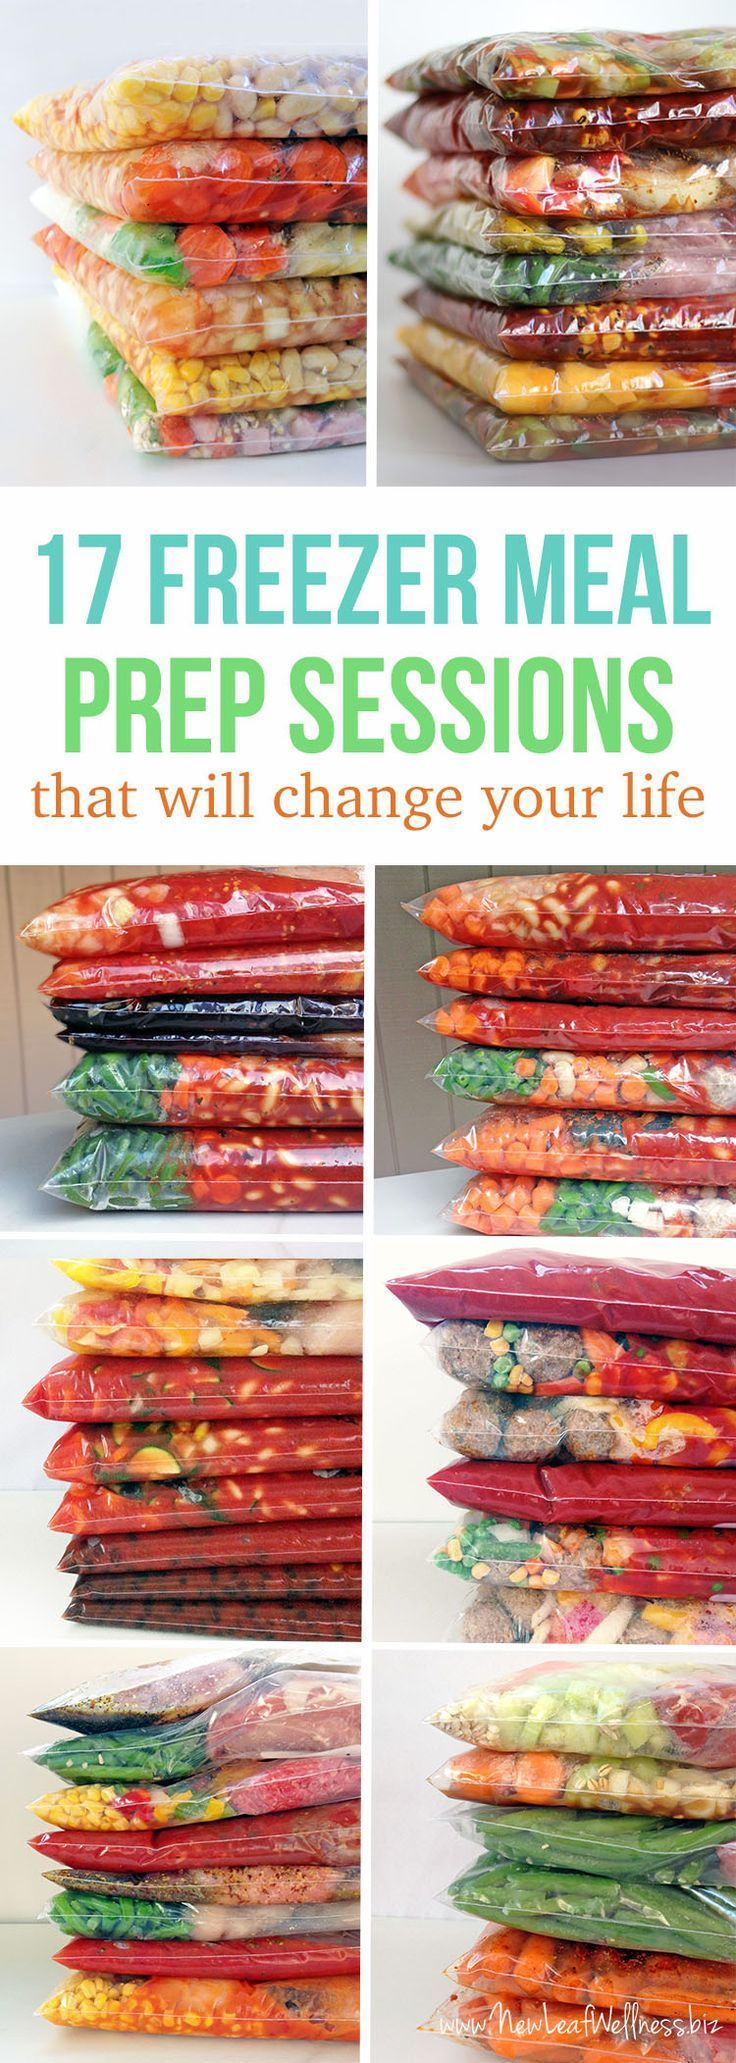 17 Freezer Meal Prep Sessions That Will Change Your Life (grocery Lists and printable recipes included). Simply combine the ingredients in a gallon-sized bag and freeze!